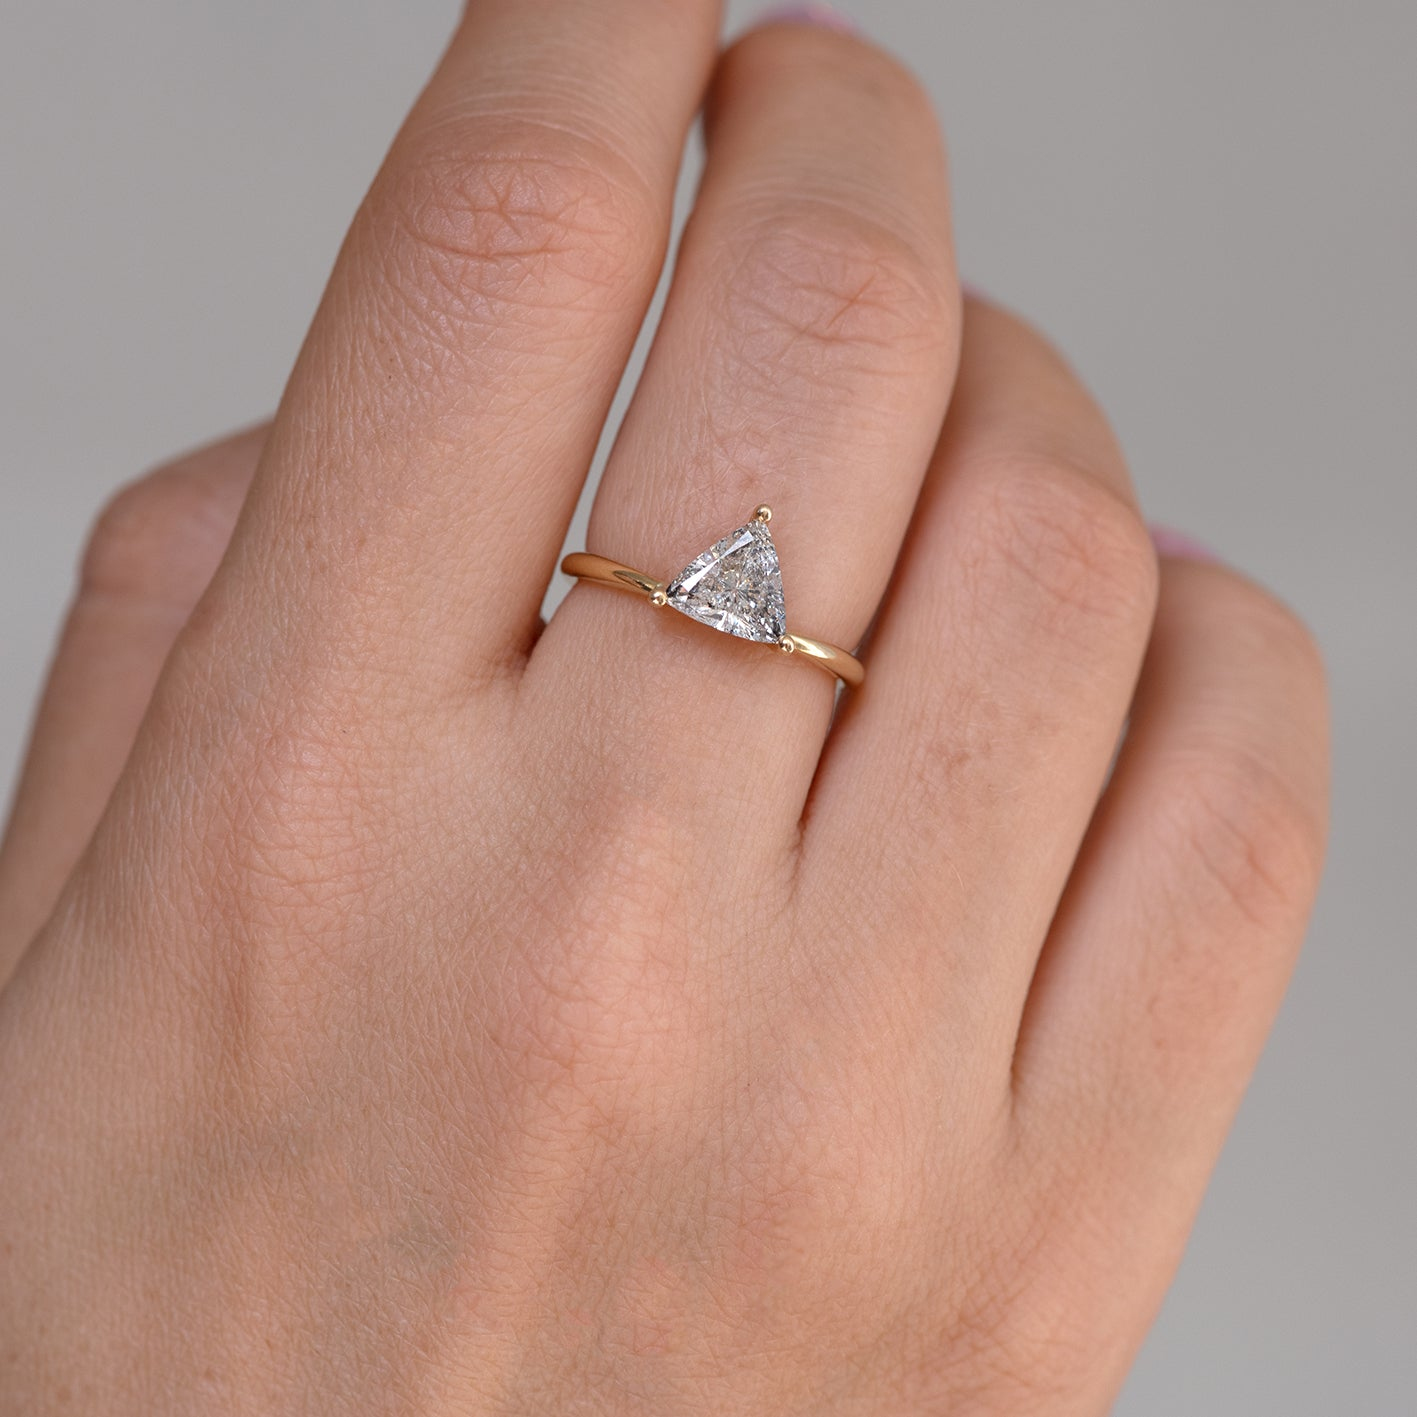 Solitaire Engagement Ring with Salt and Pepper Triangle Diamond close up